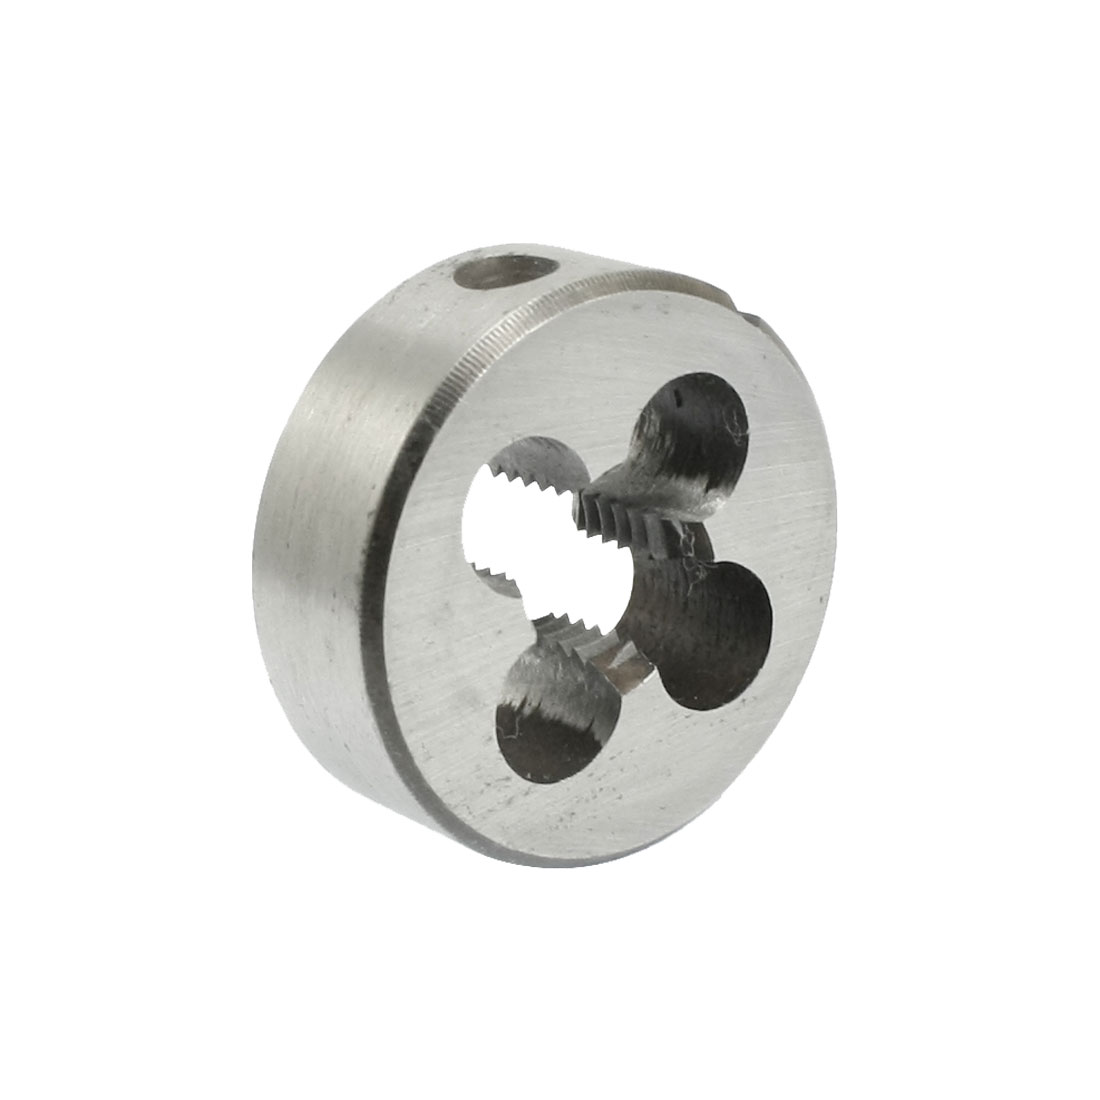 30mm Outside Dia Metric Round Thread Die Cutting Tool M10x1.25